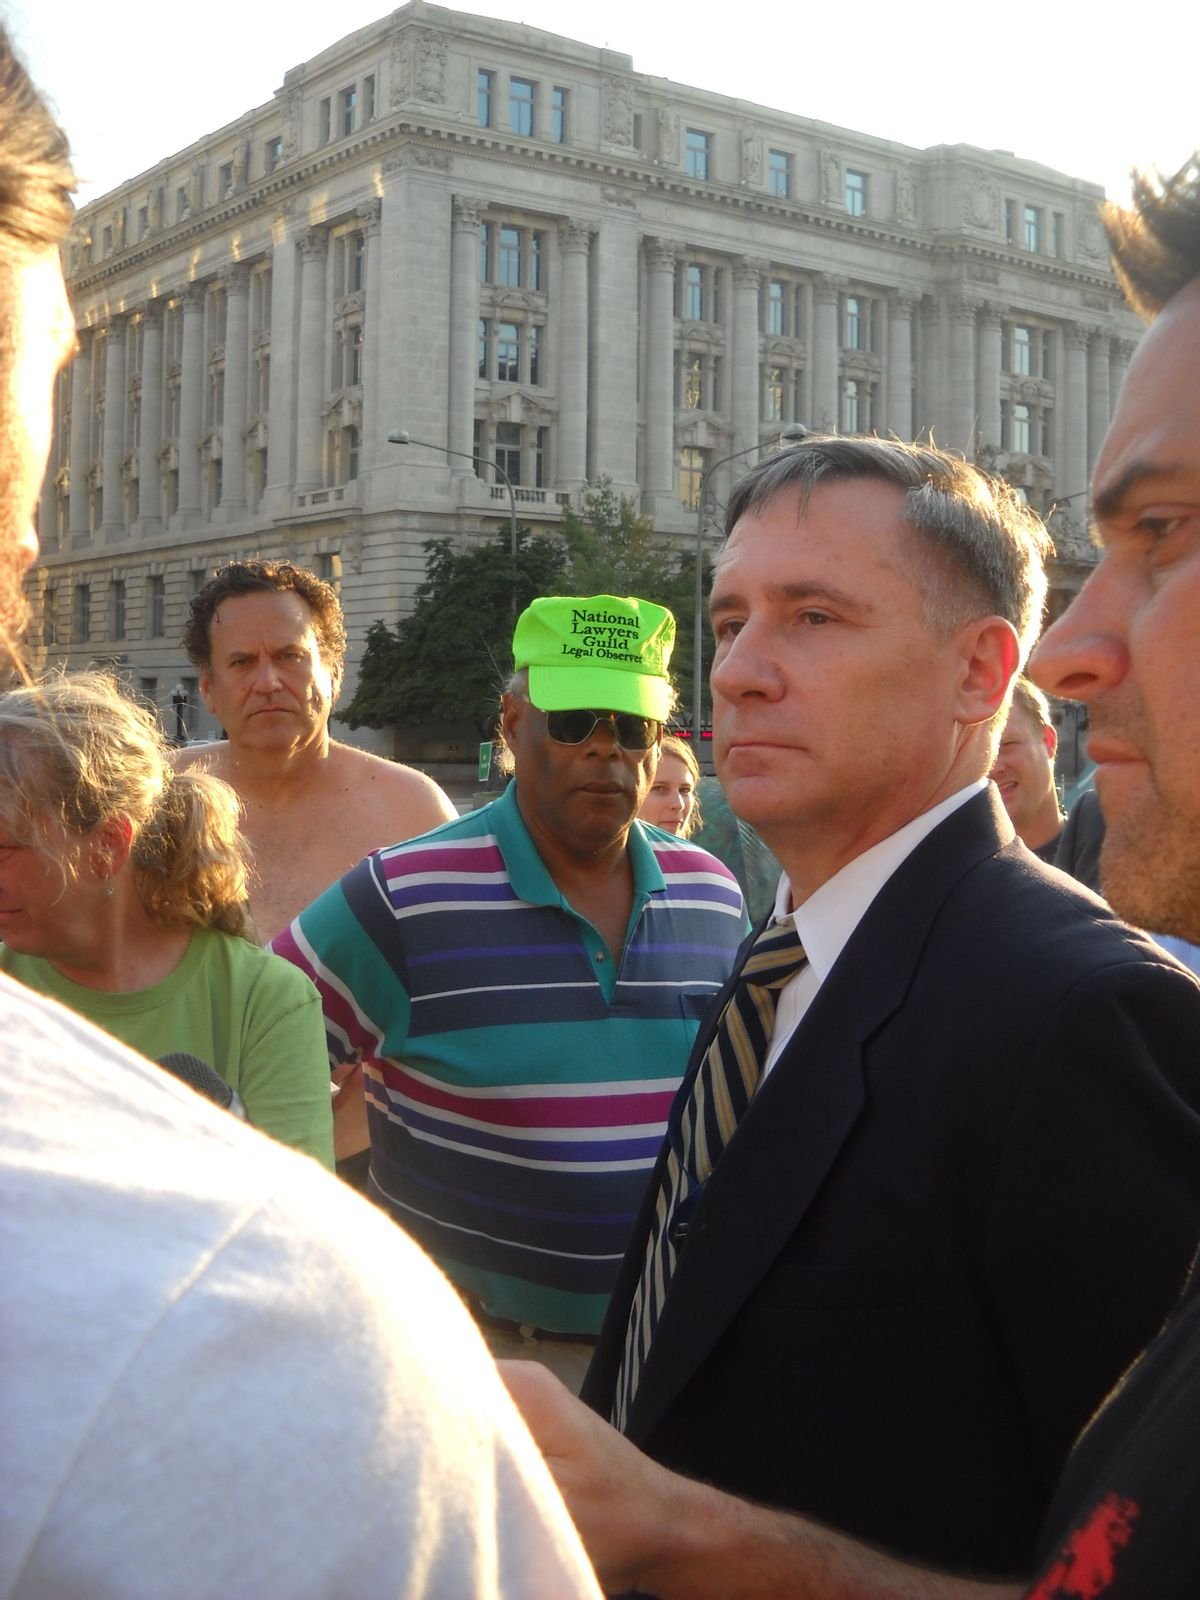 A man named Kevin engages Occupy DC -- and wins  (Jefferson Morley)